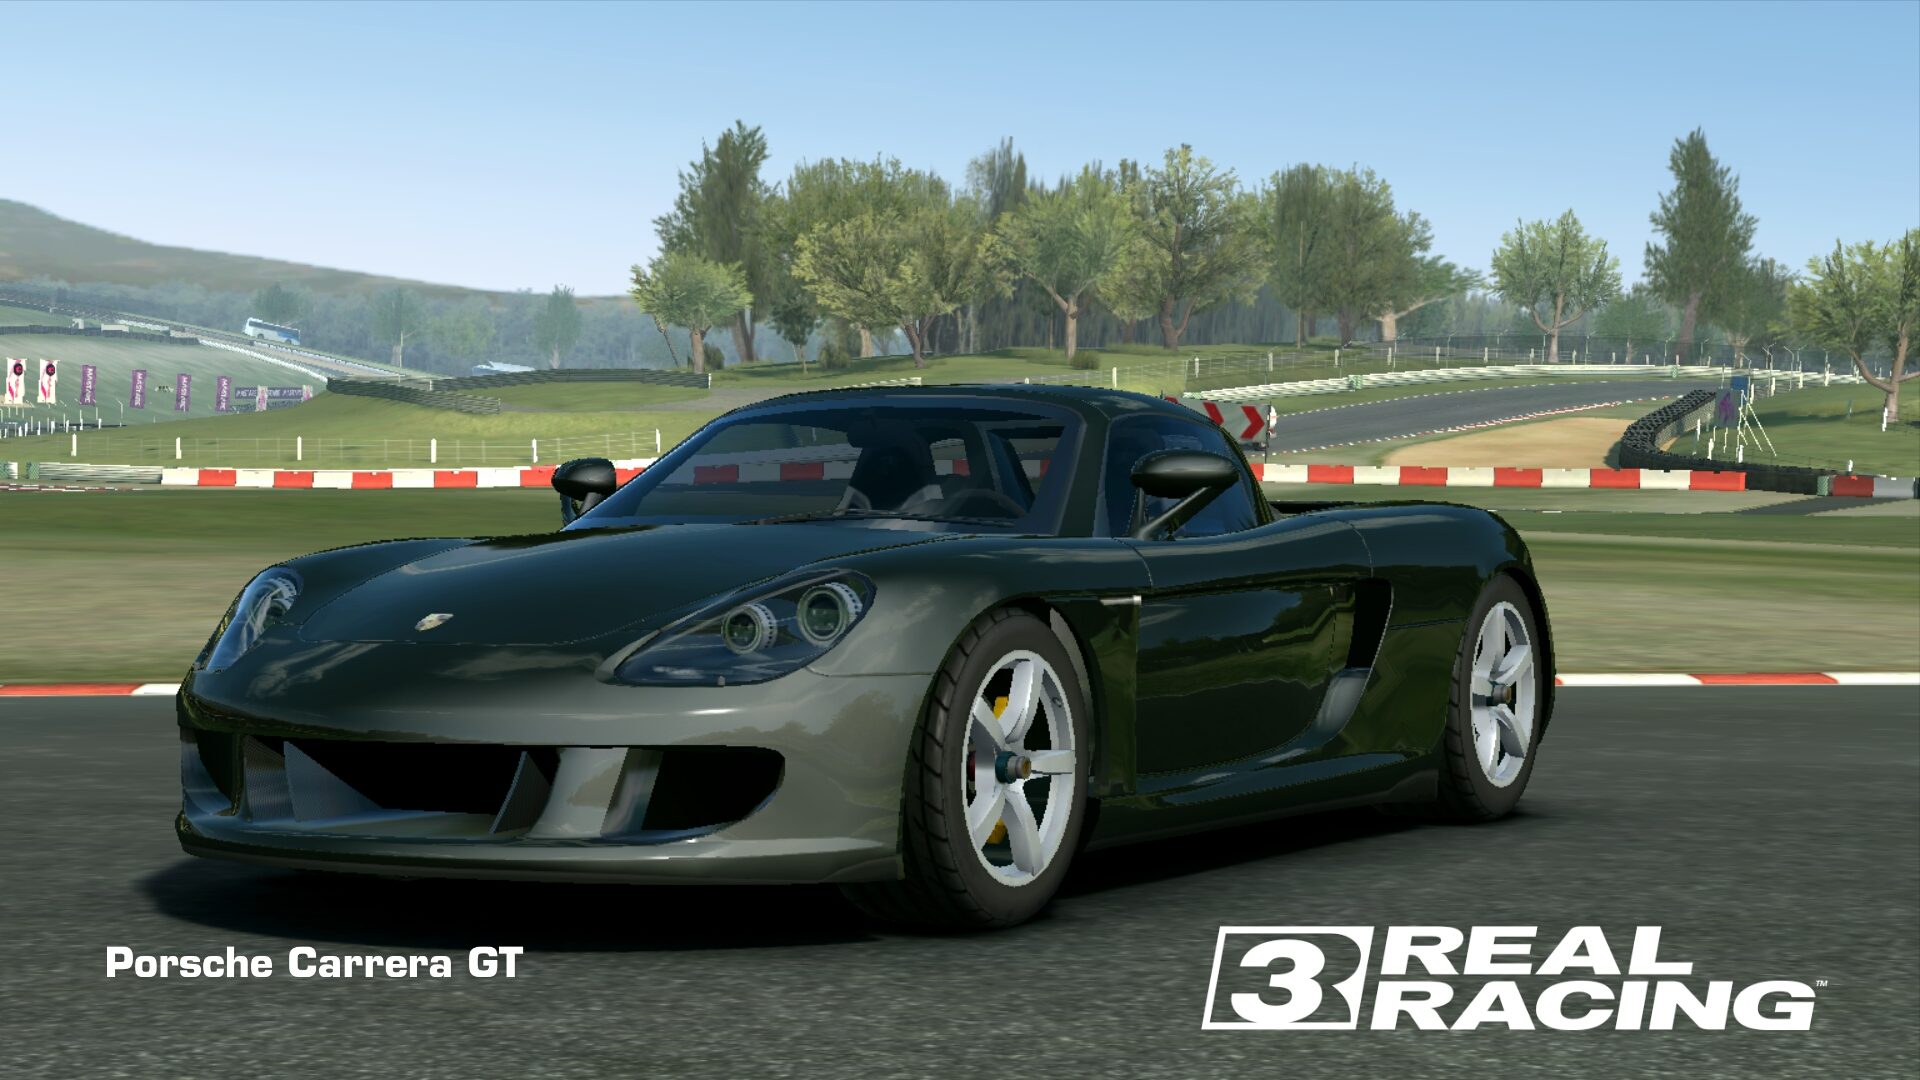 latest?cb=20150301170744 Fabulous How Much Does the Porsche 918 Spyder Concept Cost In Real Racing 3 Cars Trend